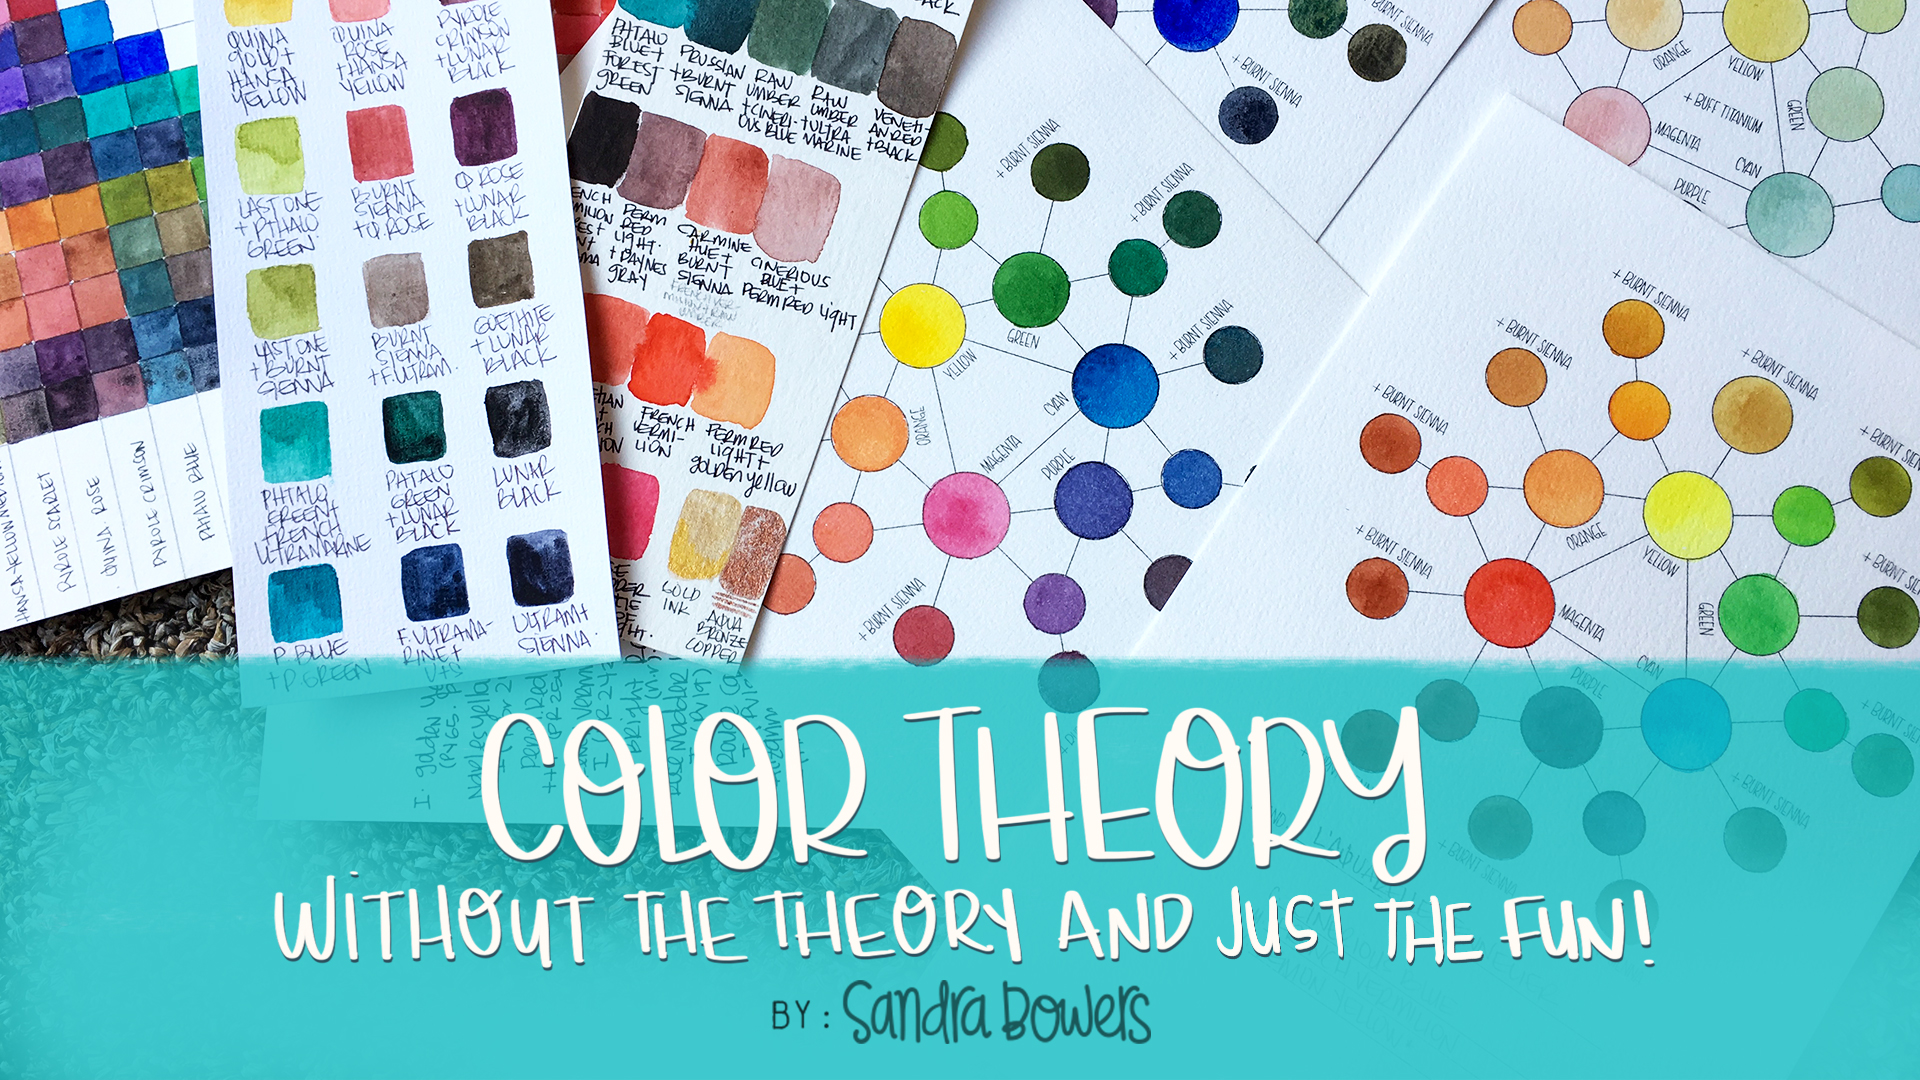 ColorTheory-Illustration-SandraBowers